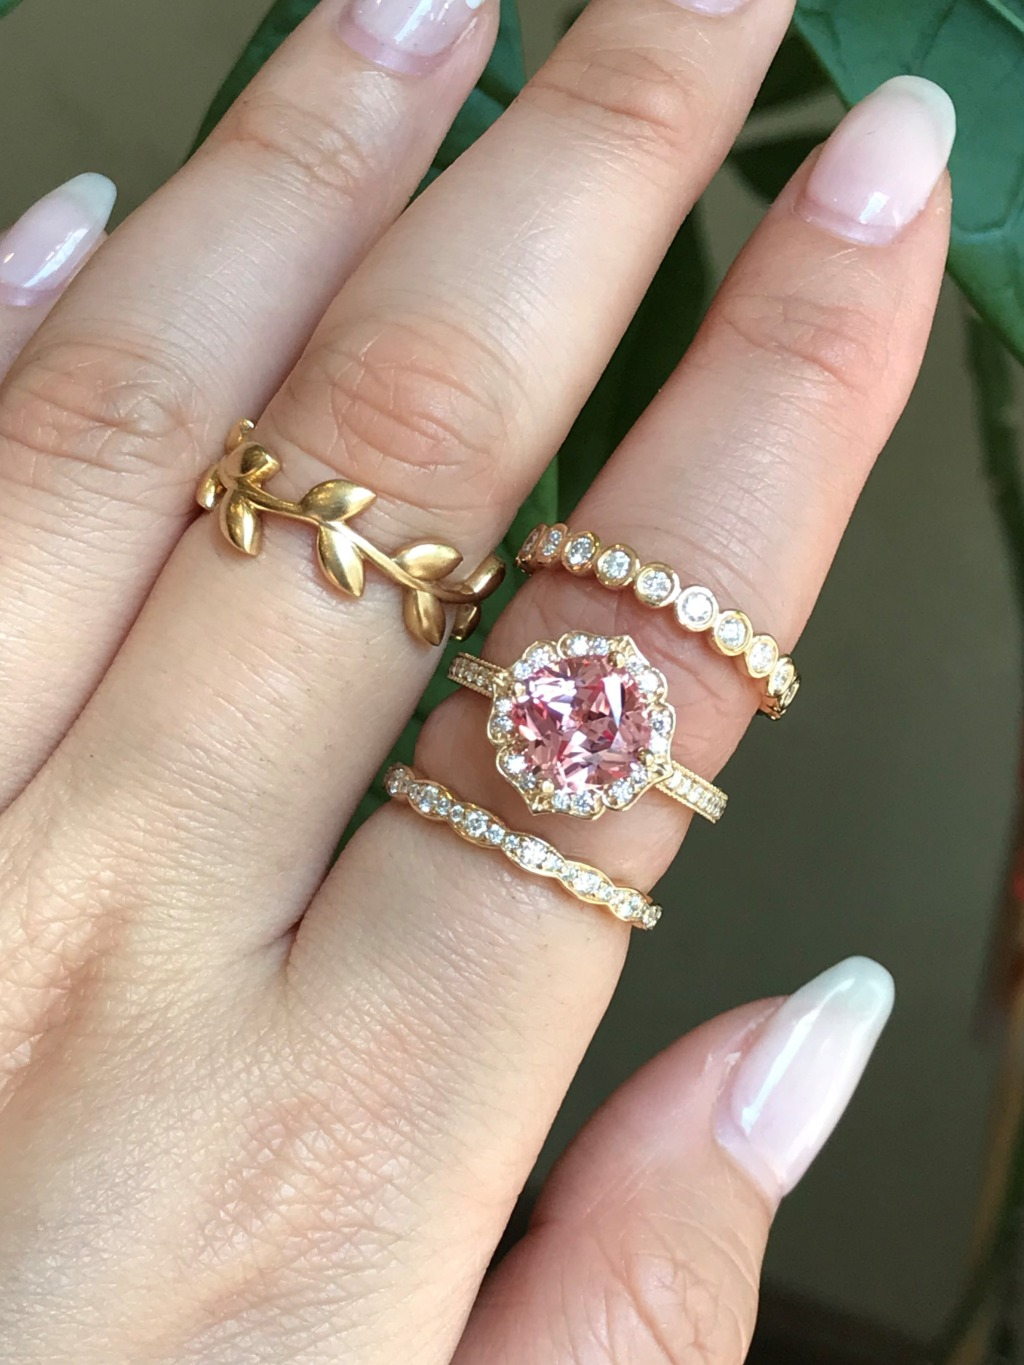 Vintage-inspired peach sapphire engagement ring features an 8x8mm cushion cut conflict free cultured champagne peach sapphire set in